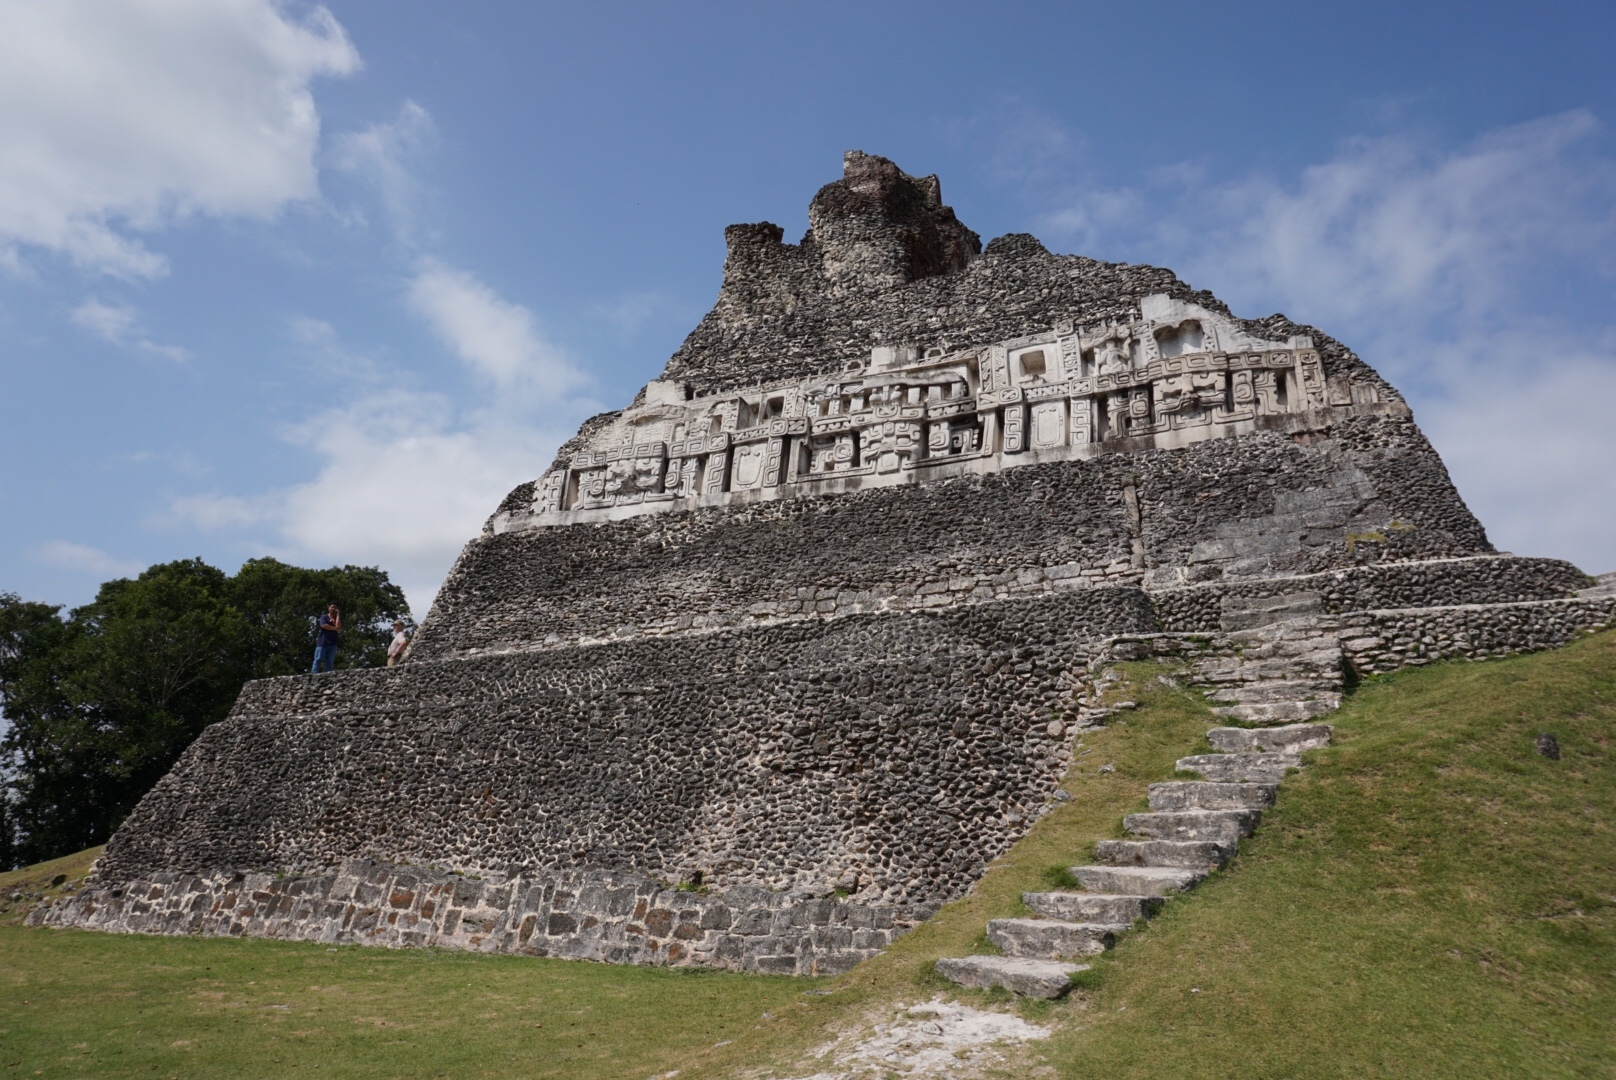 The Xunantunich ruins are the remnants of an ancient Mayan city dating to 700 CE. Photo: Chloe Berge